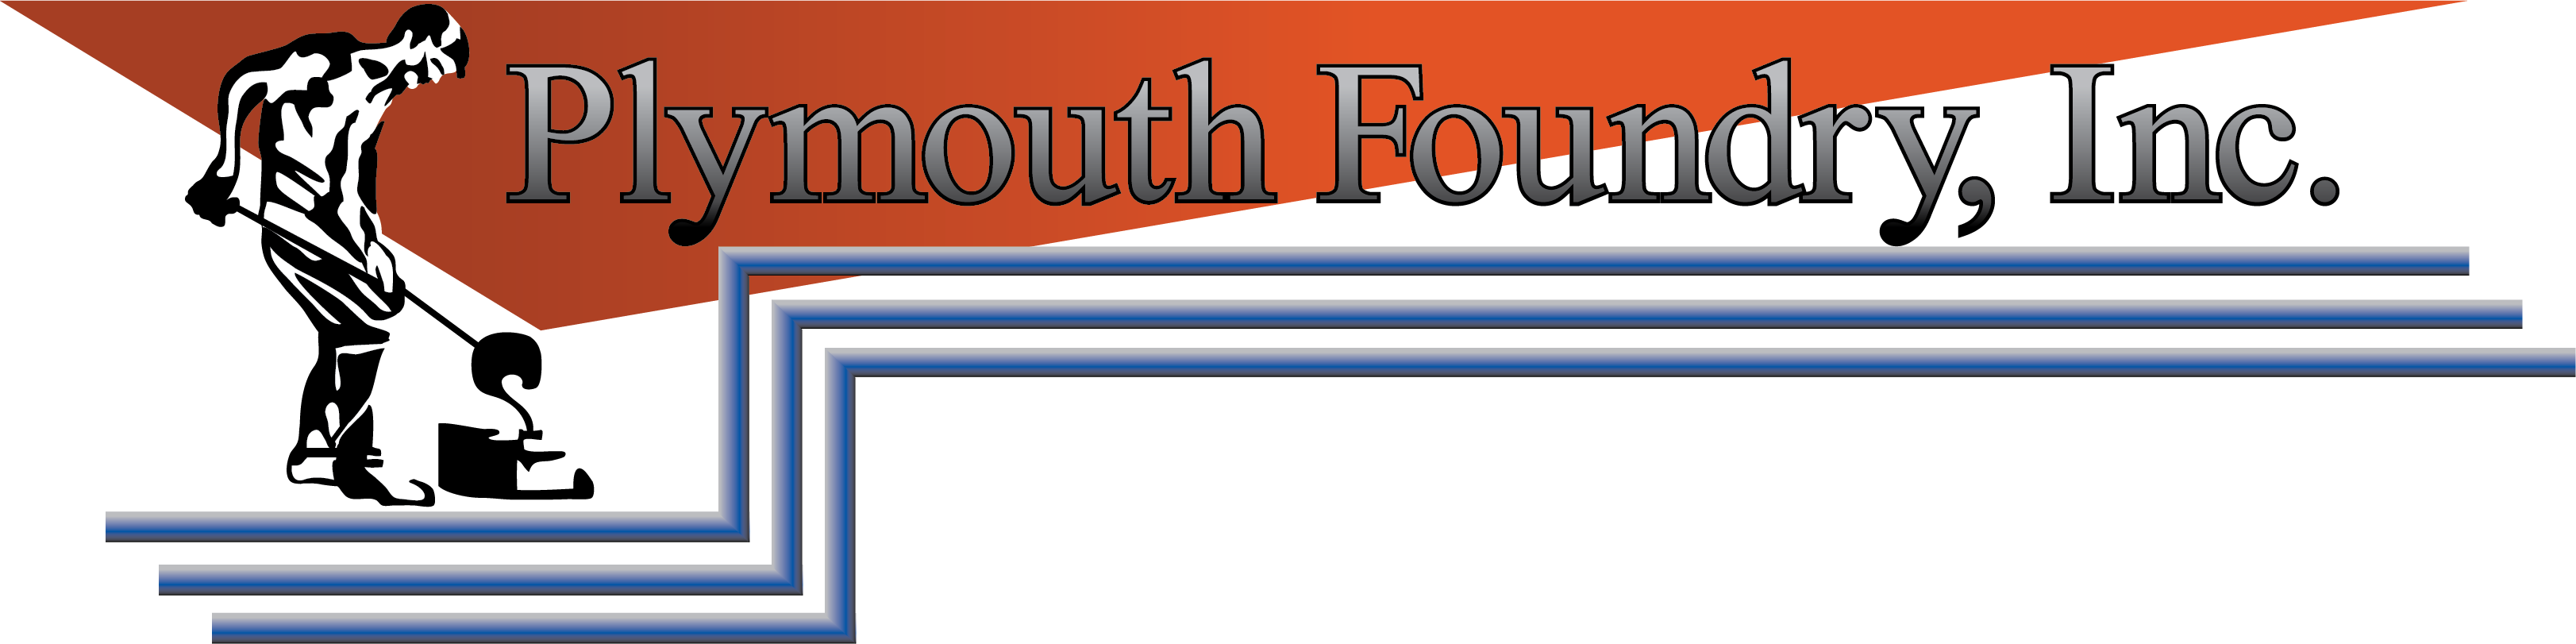 plymouth_foundry_footer_logo